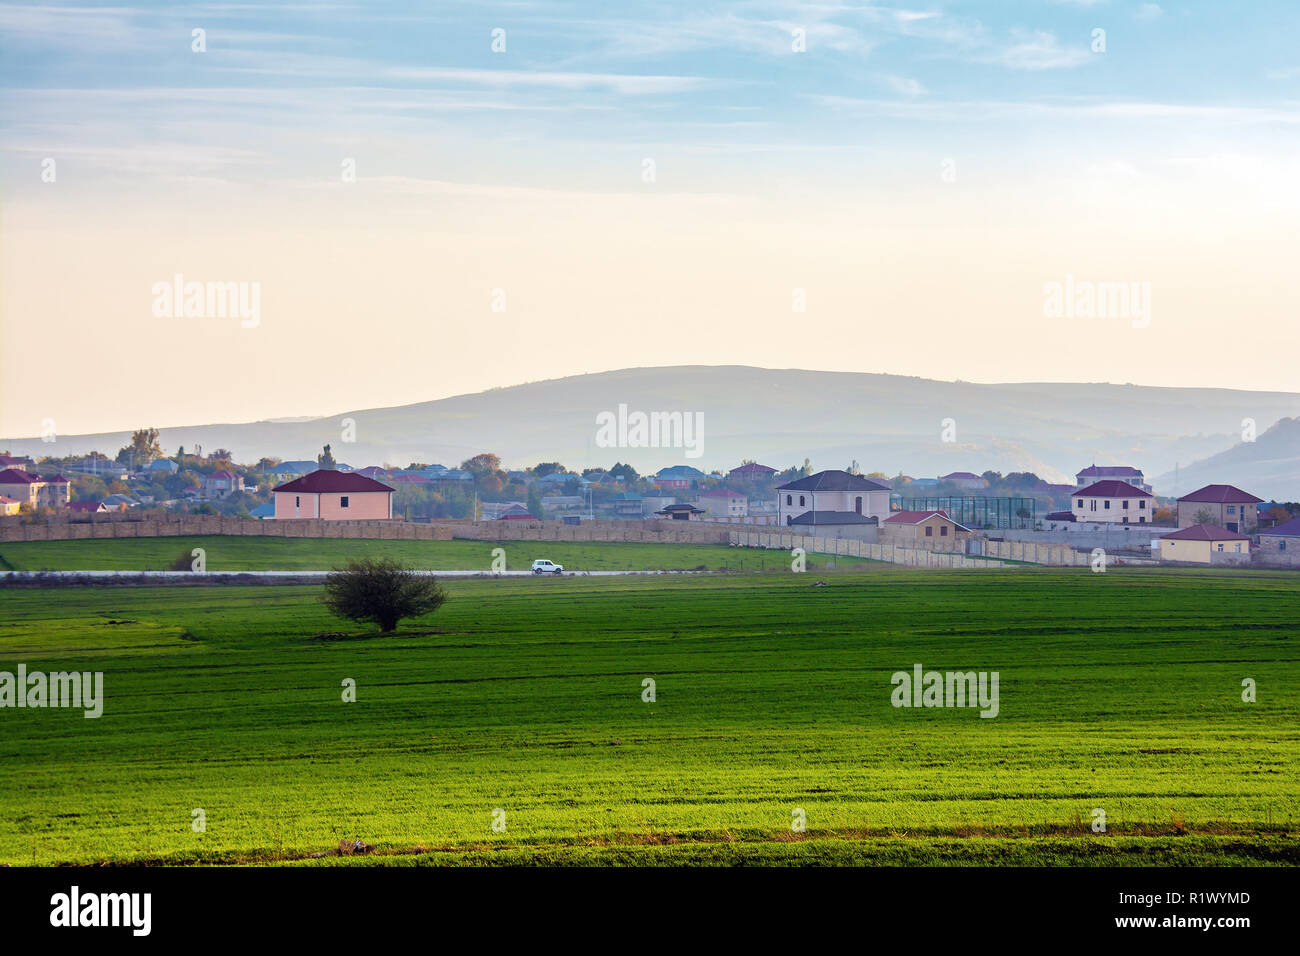 A small village in the foothills - Stock Image